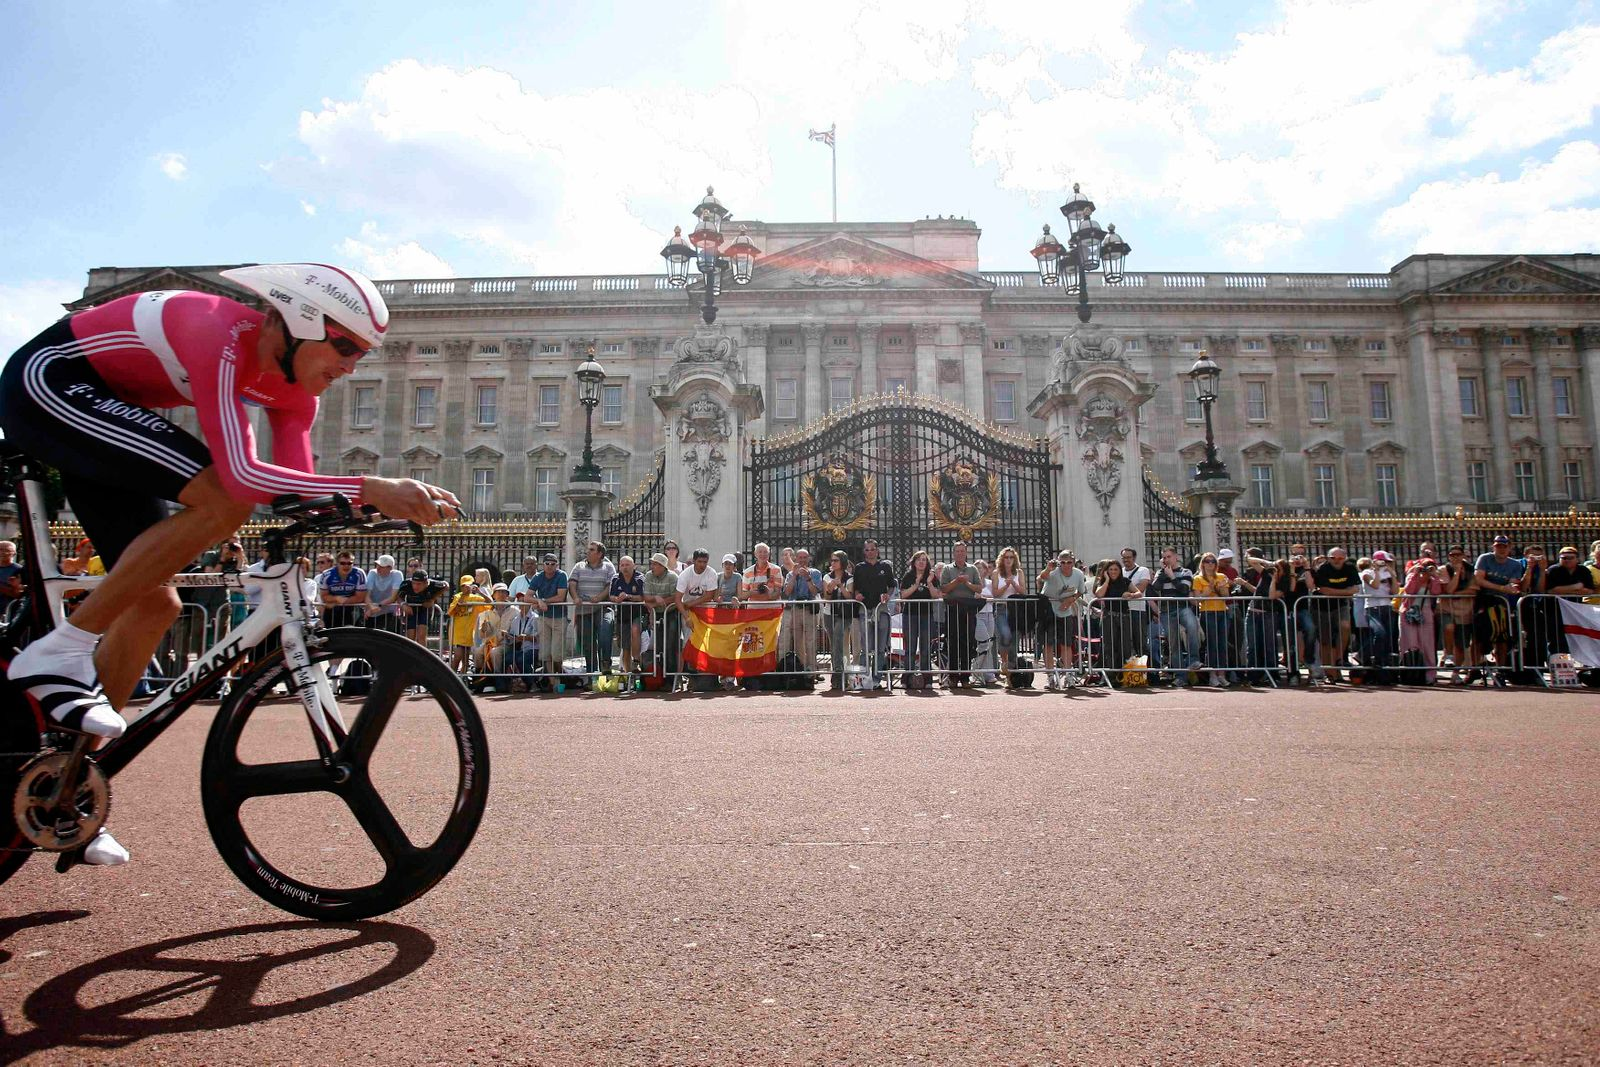 T-Mobile team rider Merckx cycles past Buckingham Palace during the prologue stage of the 94th Tour de France cycling race in London